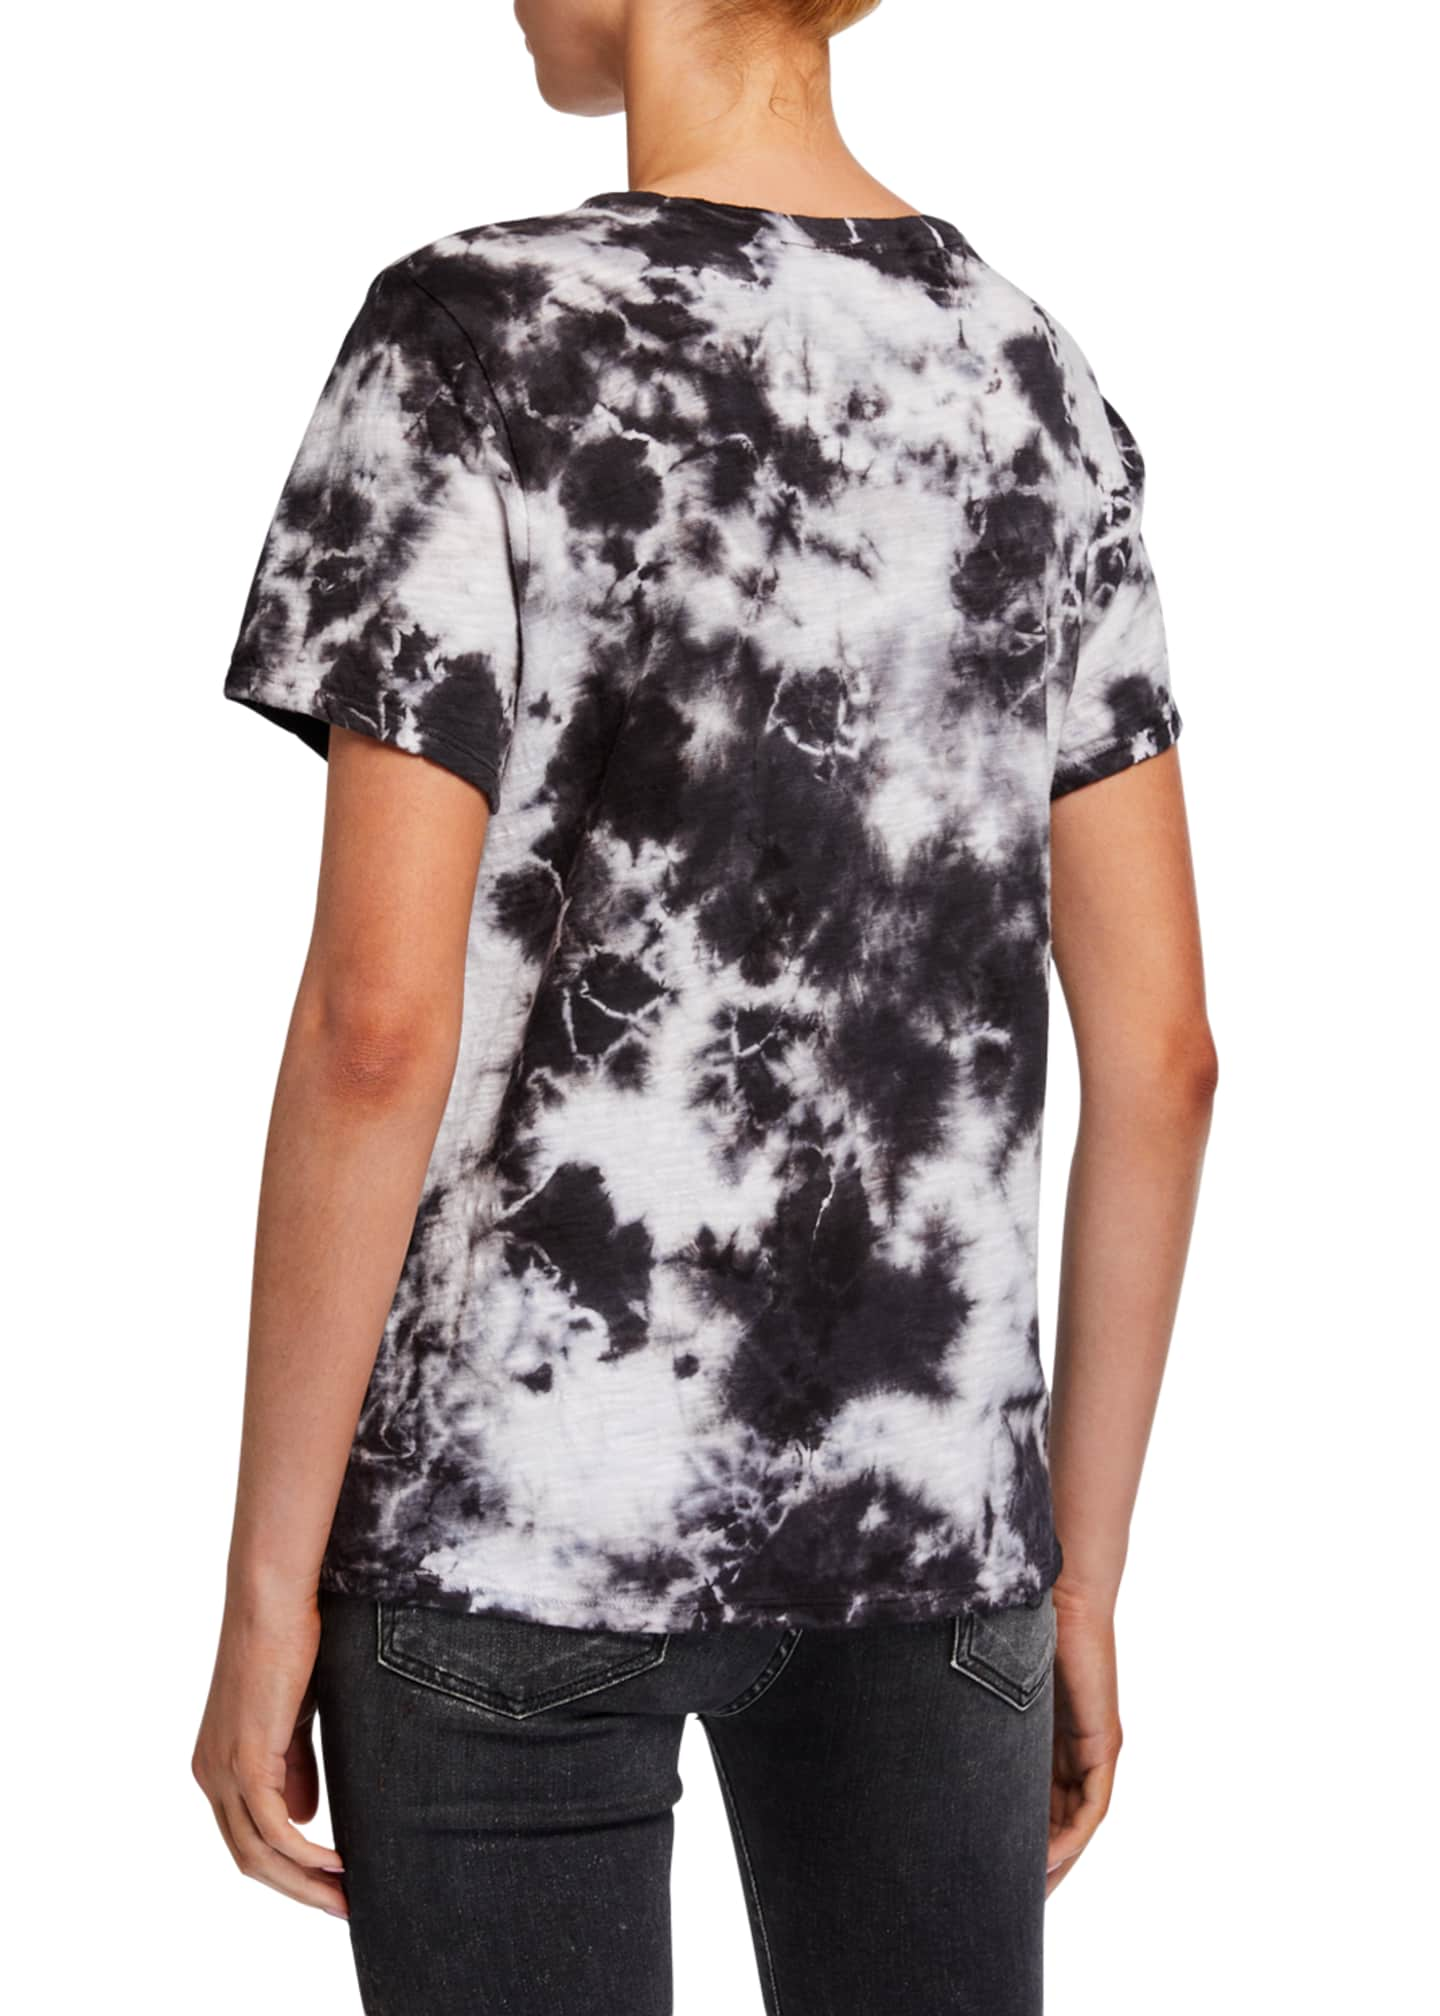 Image 2 of 2: Under The Stars Tie-Dye Graphic Tee